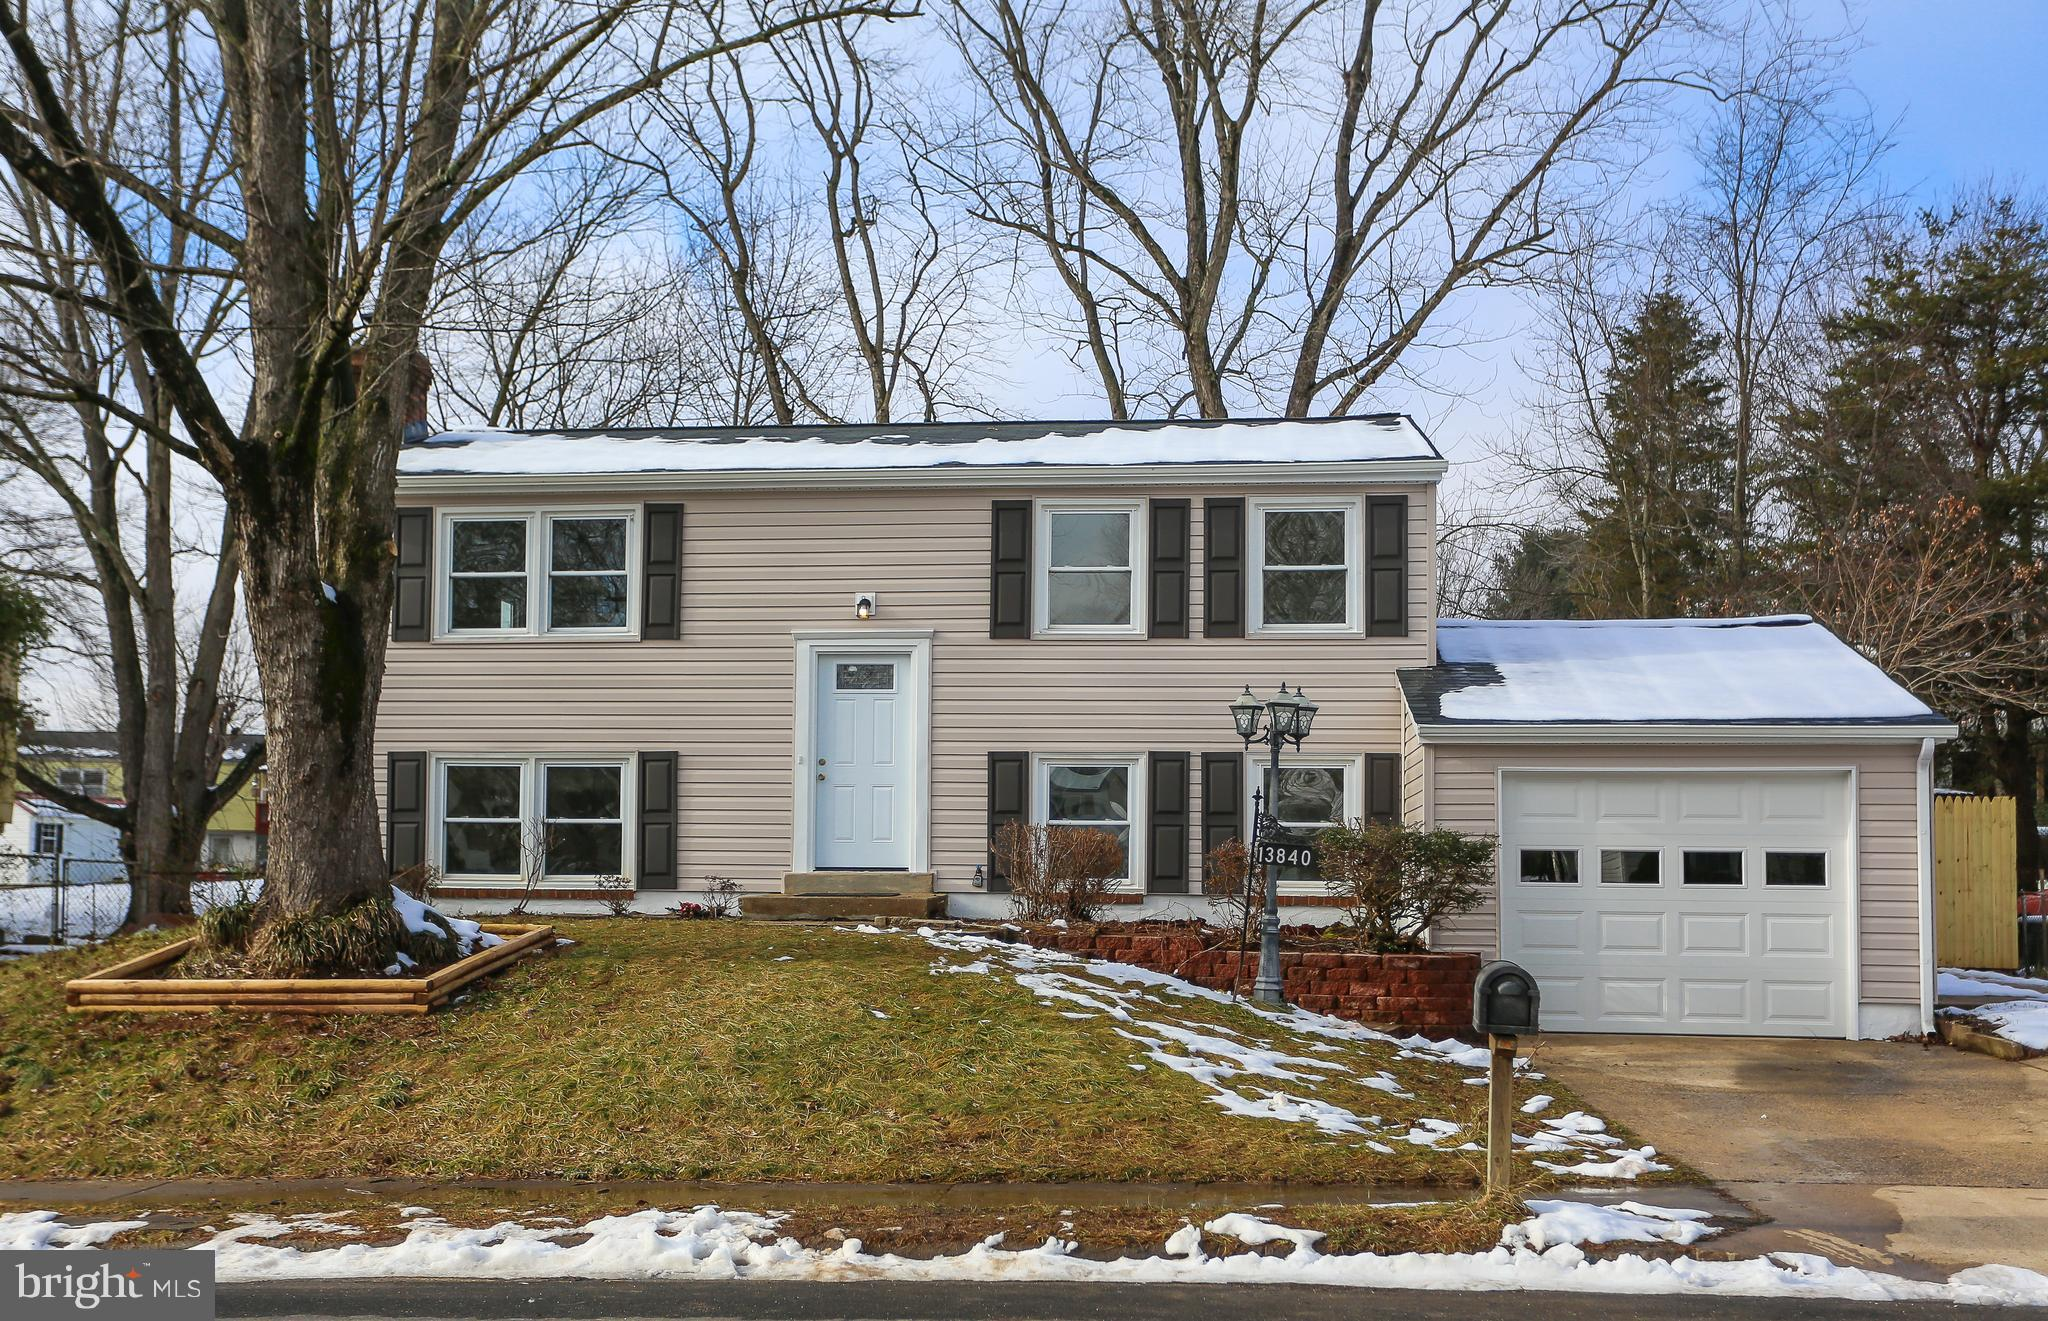 Completely renovated from top to bottom inc - All brand new, Roof, Siding, Gutters, Garage door,Elec